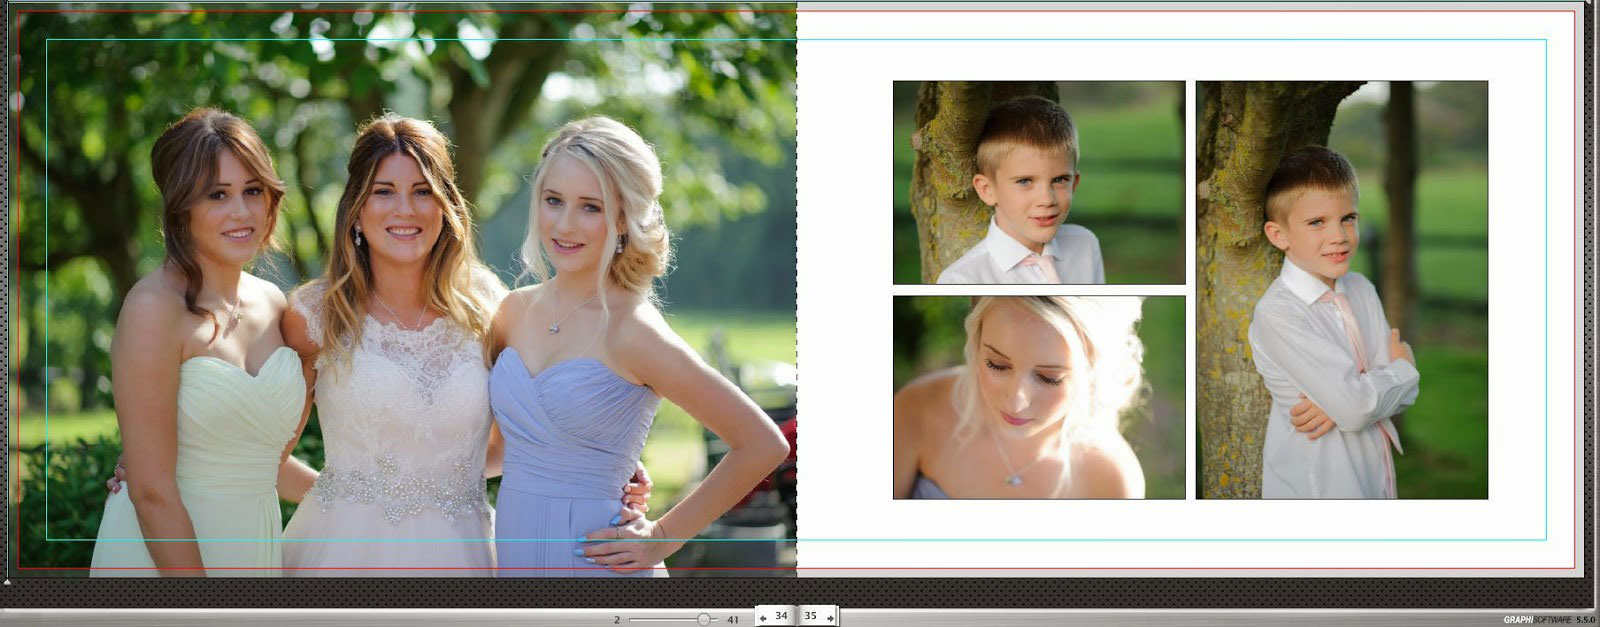 ali-gaudion-chichester-wedding-photographer-graphistudio-wedding-album-design-015